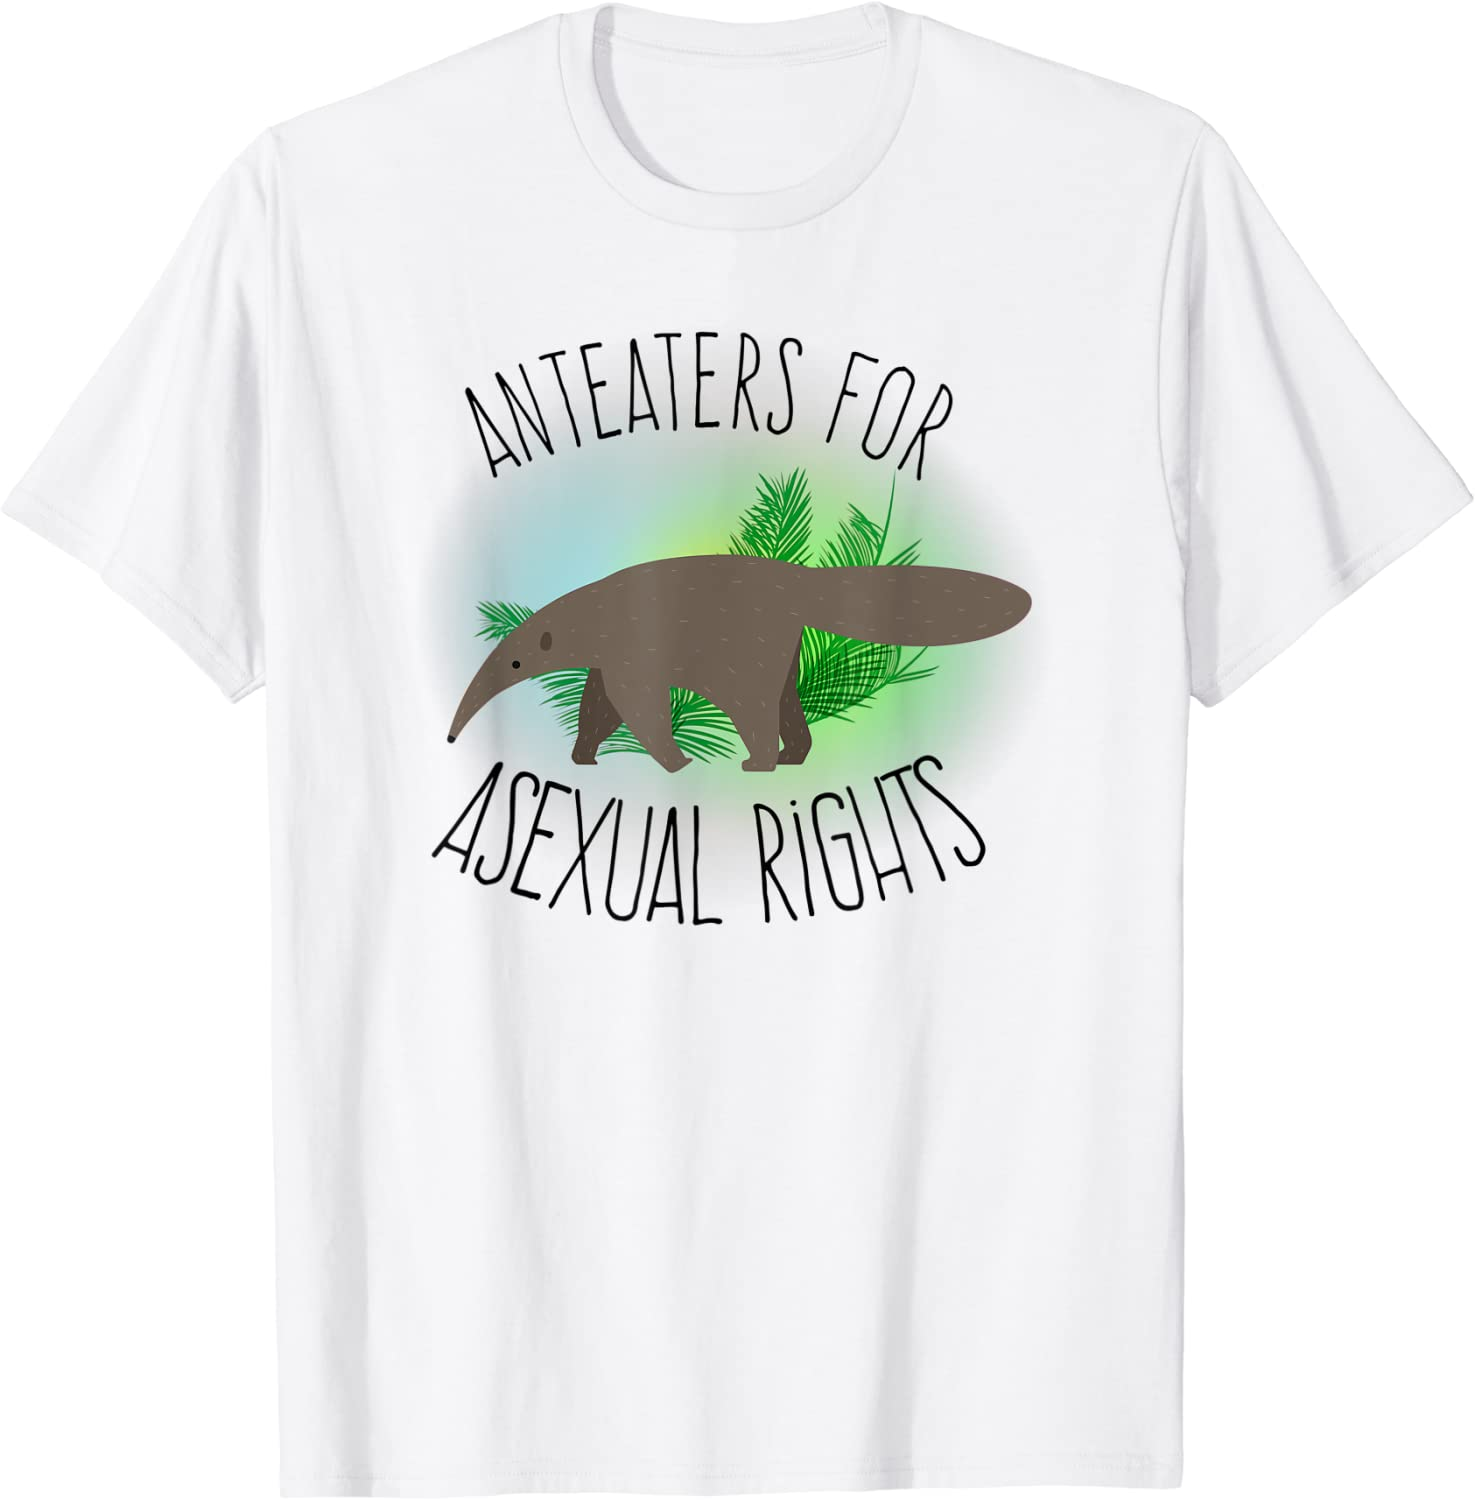 Anteater for Asexual Rights - LGBTQ Pride T-Shirt Men Women